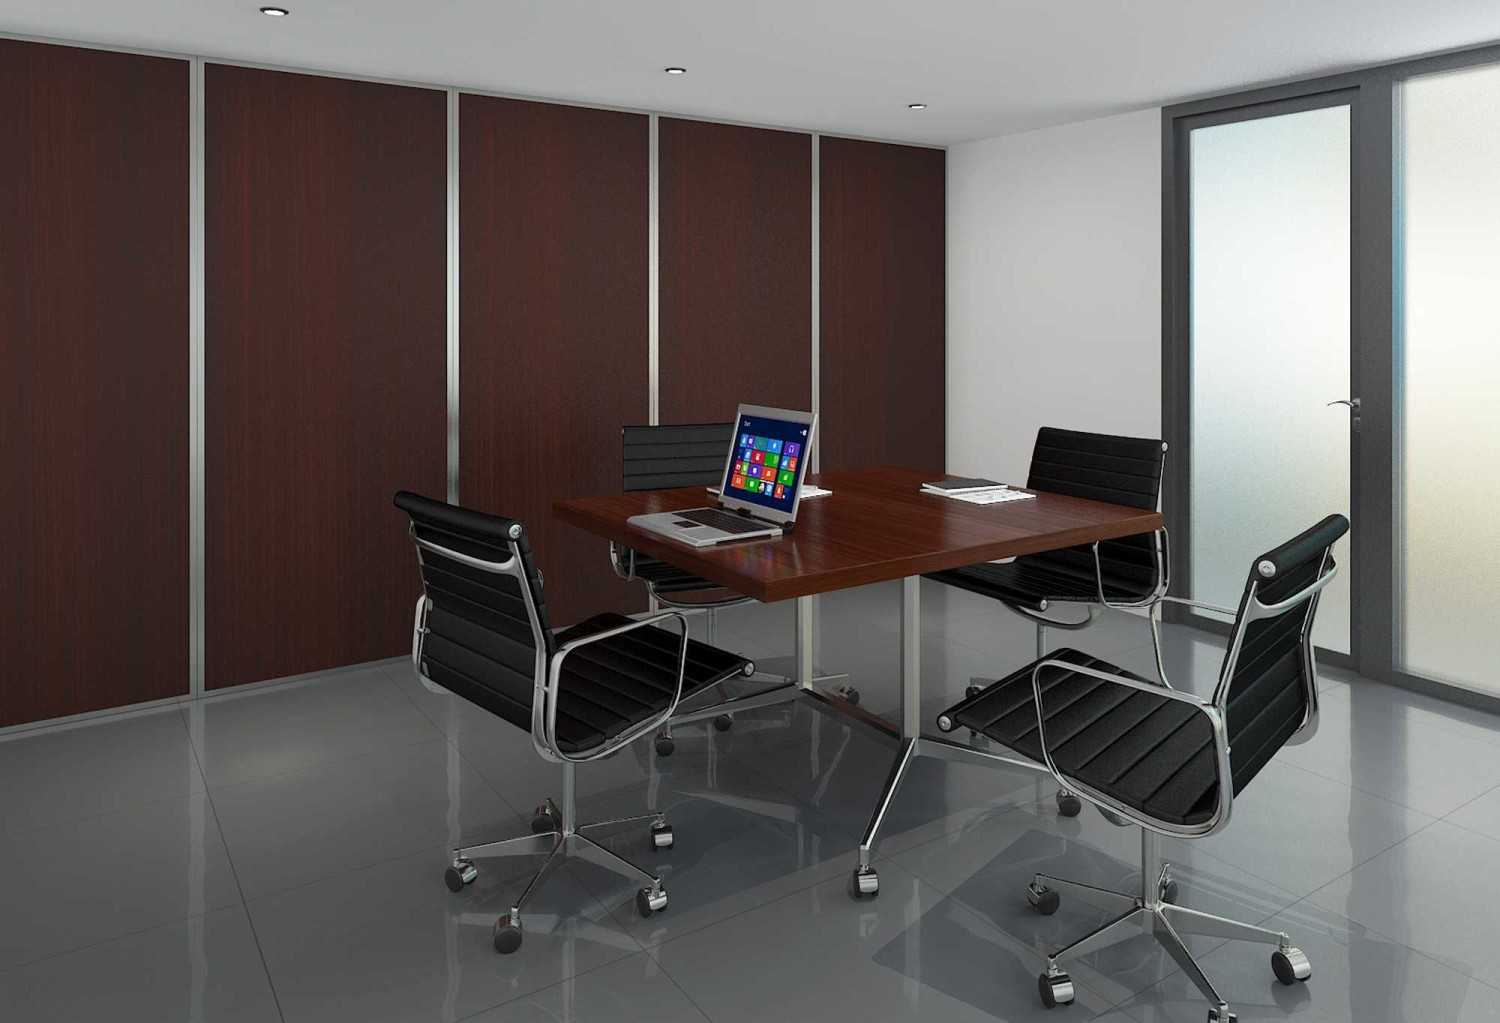 Foto inspirasi ide desain ruang meeting asian Meeting room oleh Pinto Interior di Arsitag